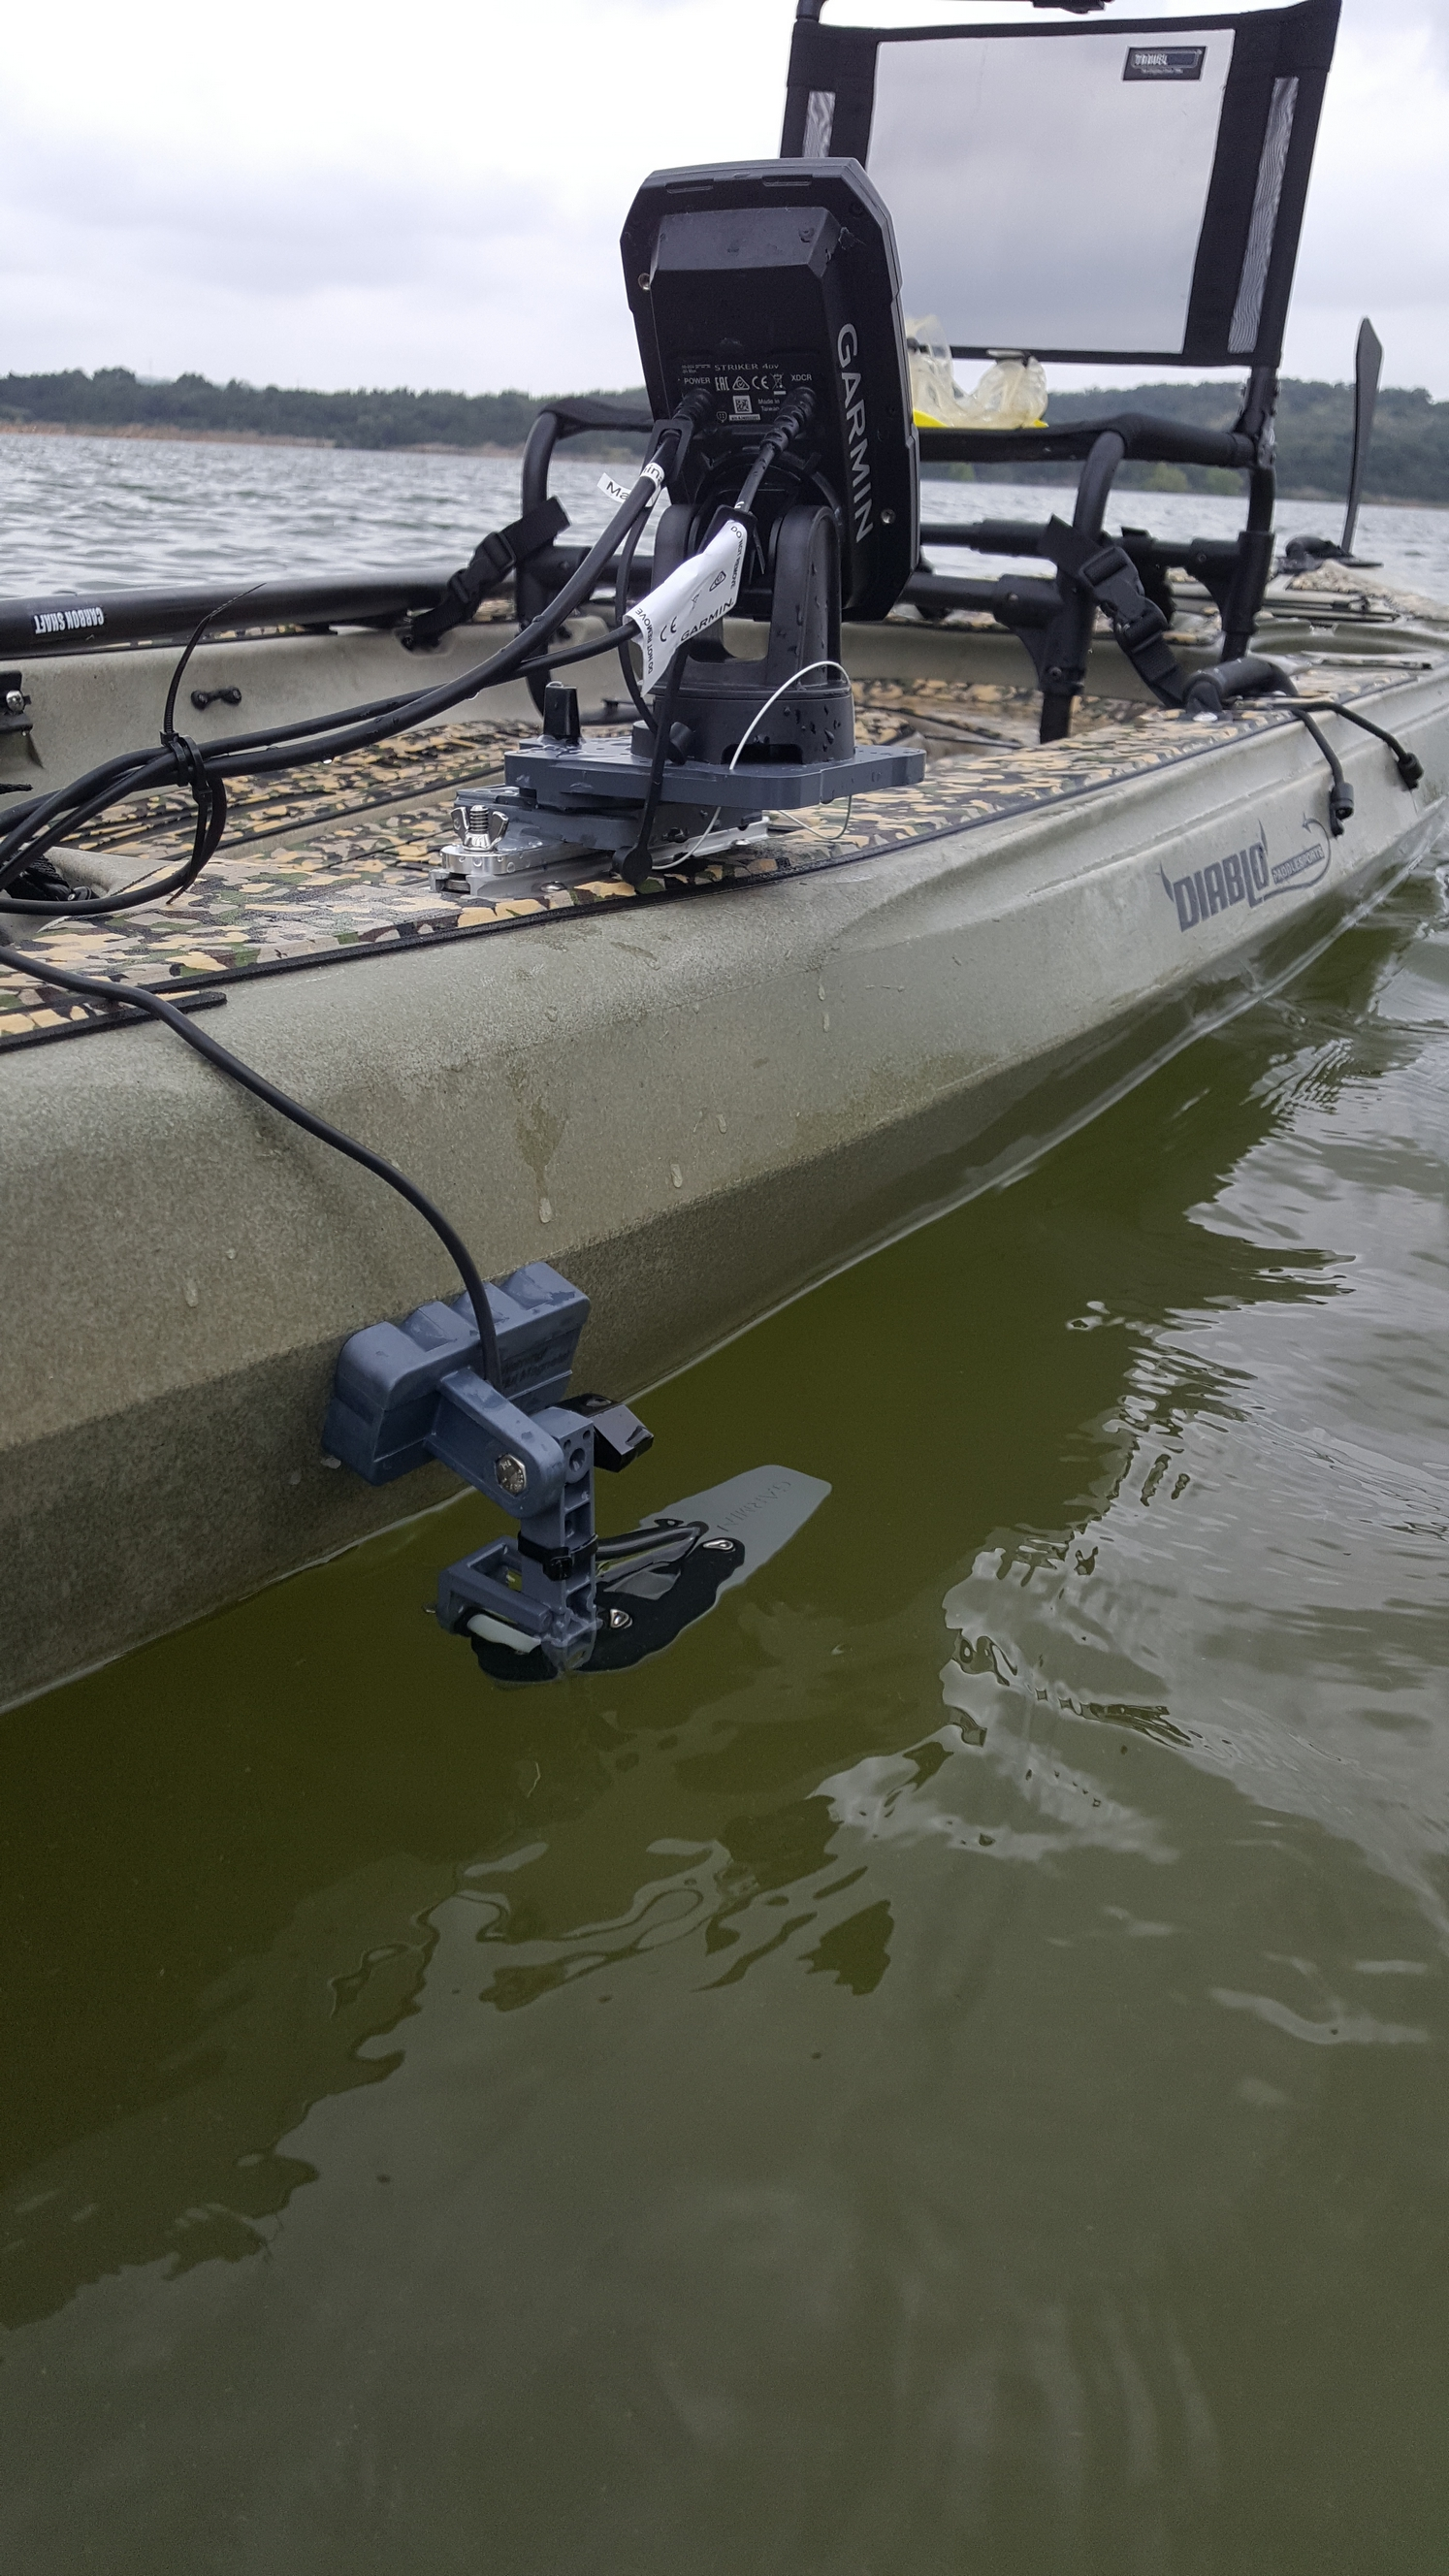 Diablo Kayak magnetic transducer